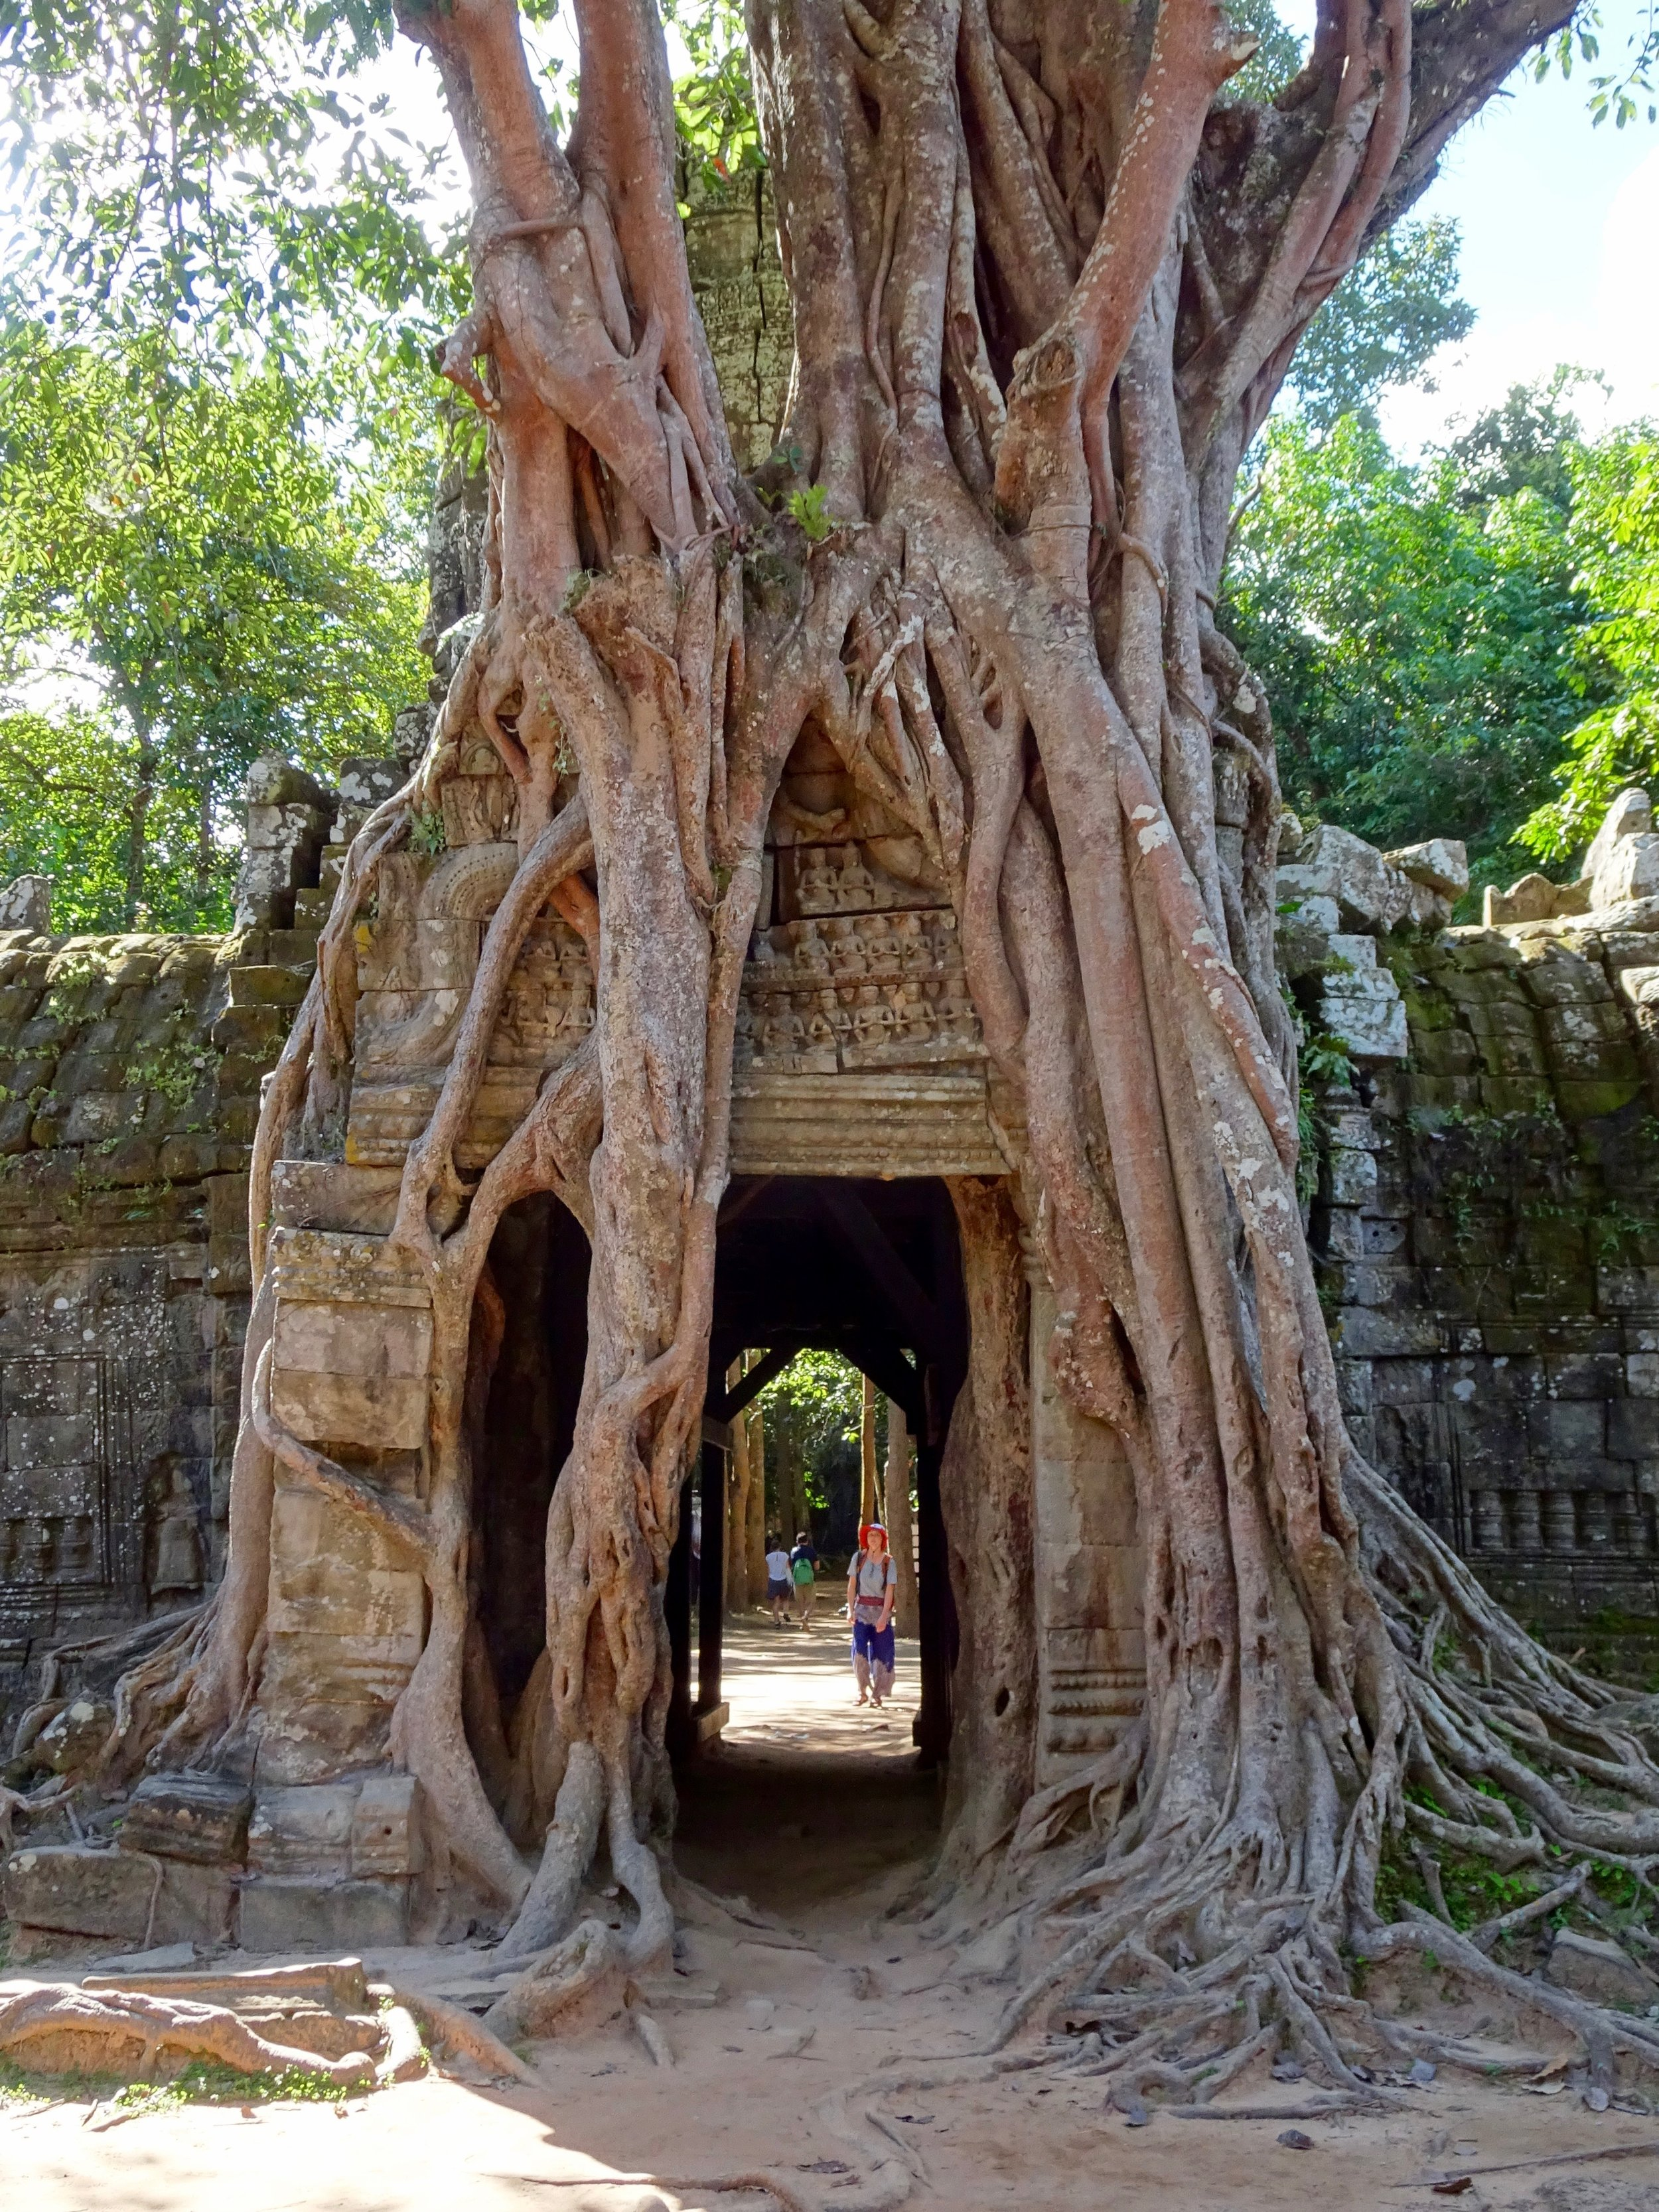 TA SOM,  ANGKOR WAT TEMPLE COMPLEX  , SIEM REAP, CAMBODIA - M.QUIGLEY